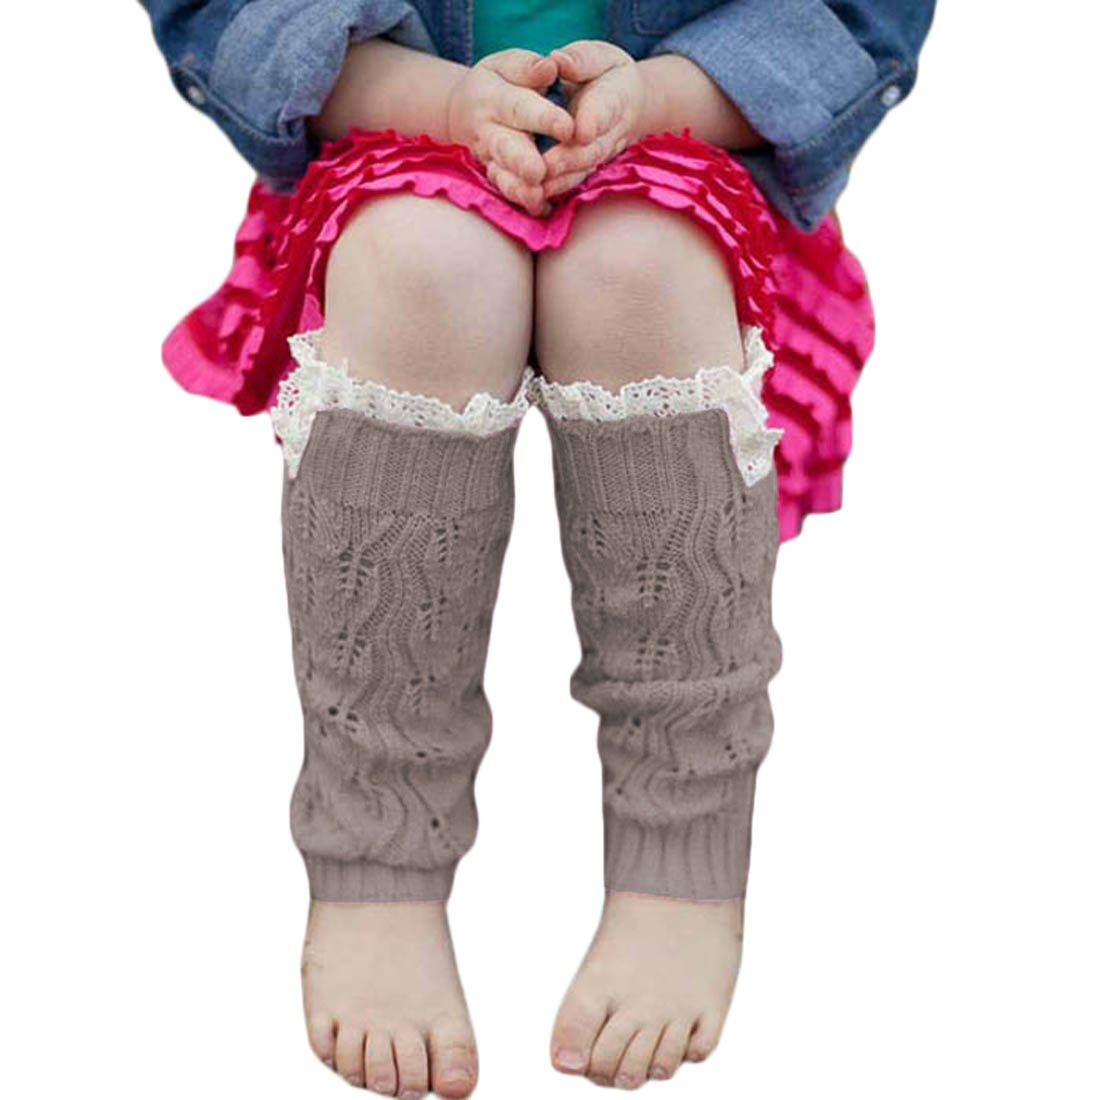 FEITONG® Fashion New Toddlers Kids Girl's Leg Warmers Socks FEITONG666